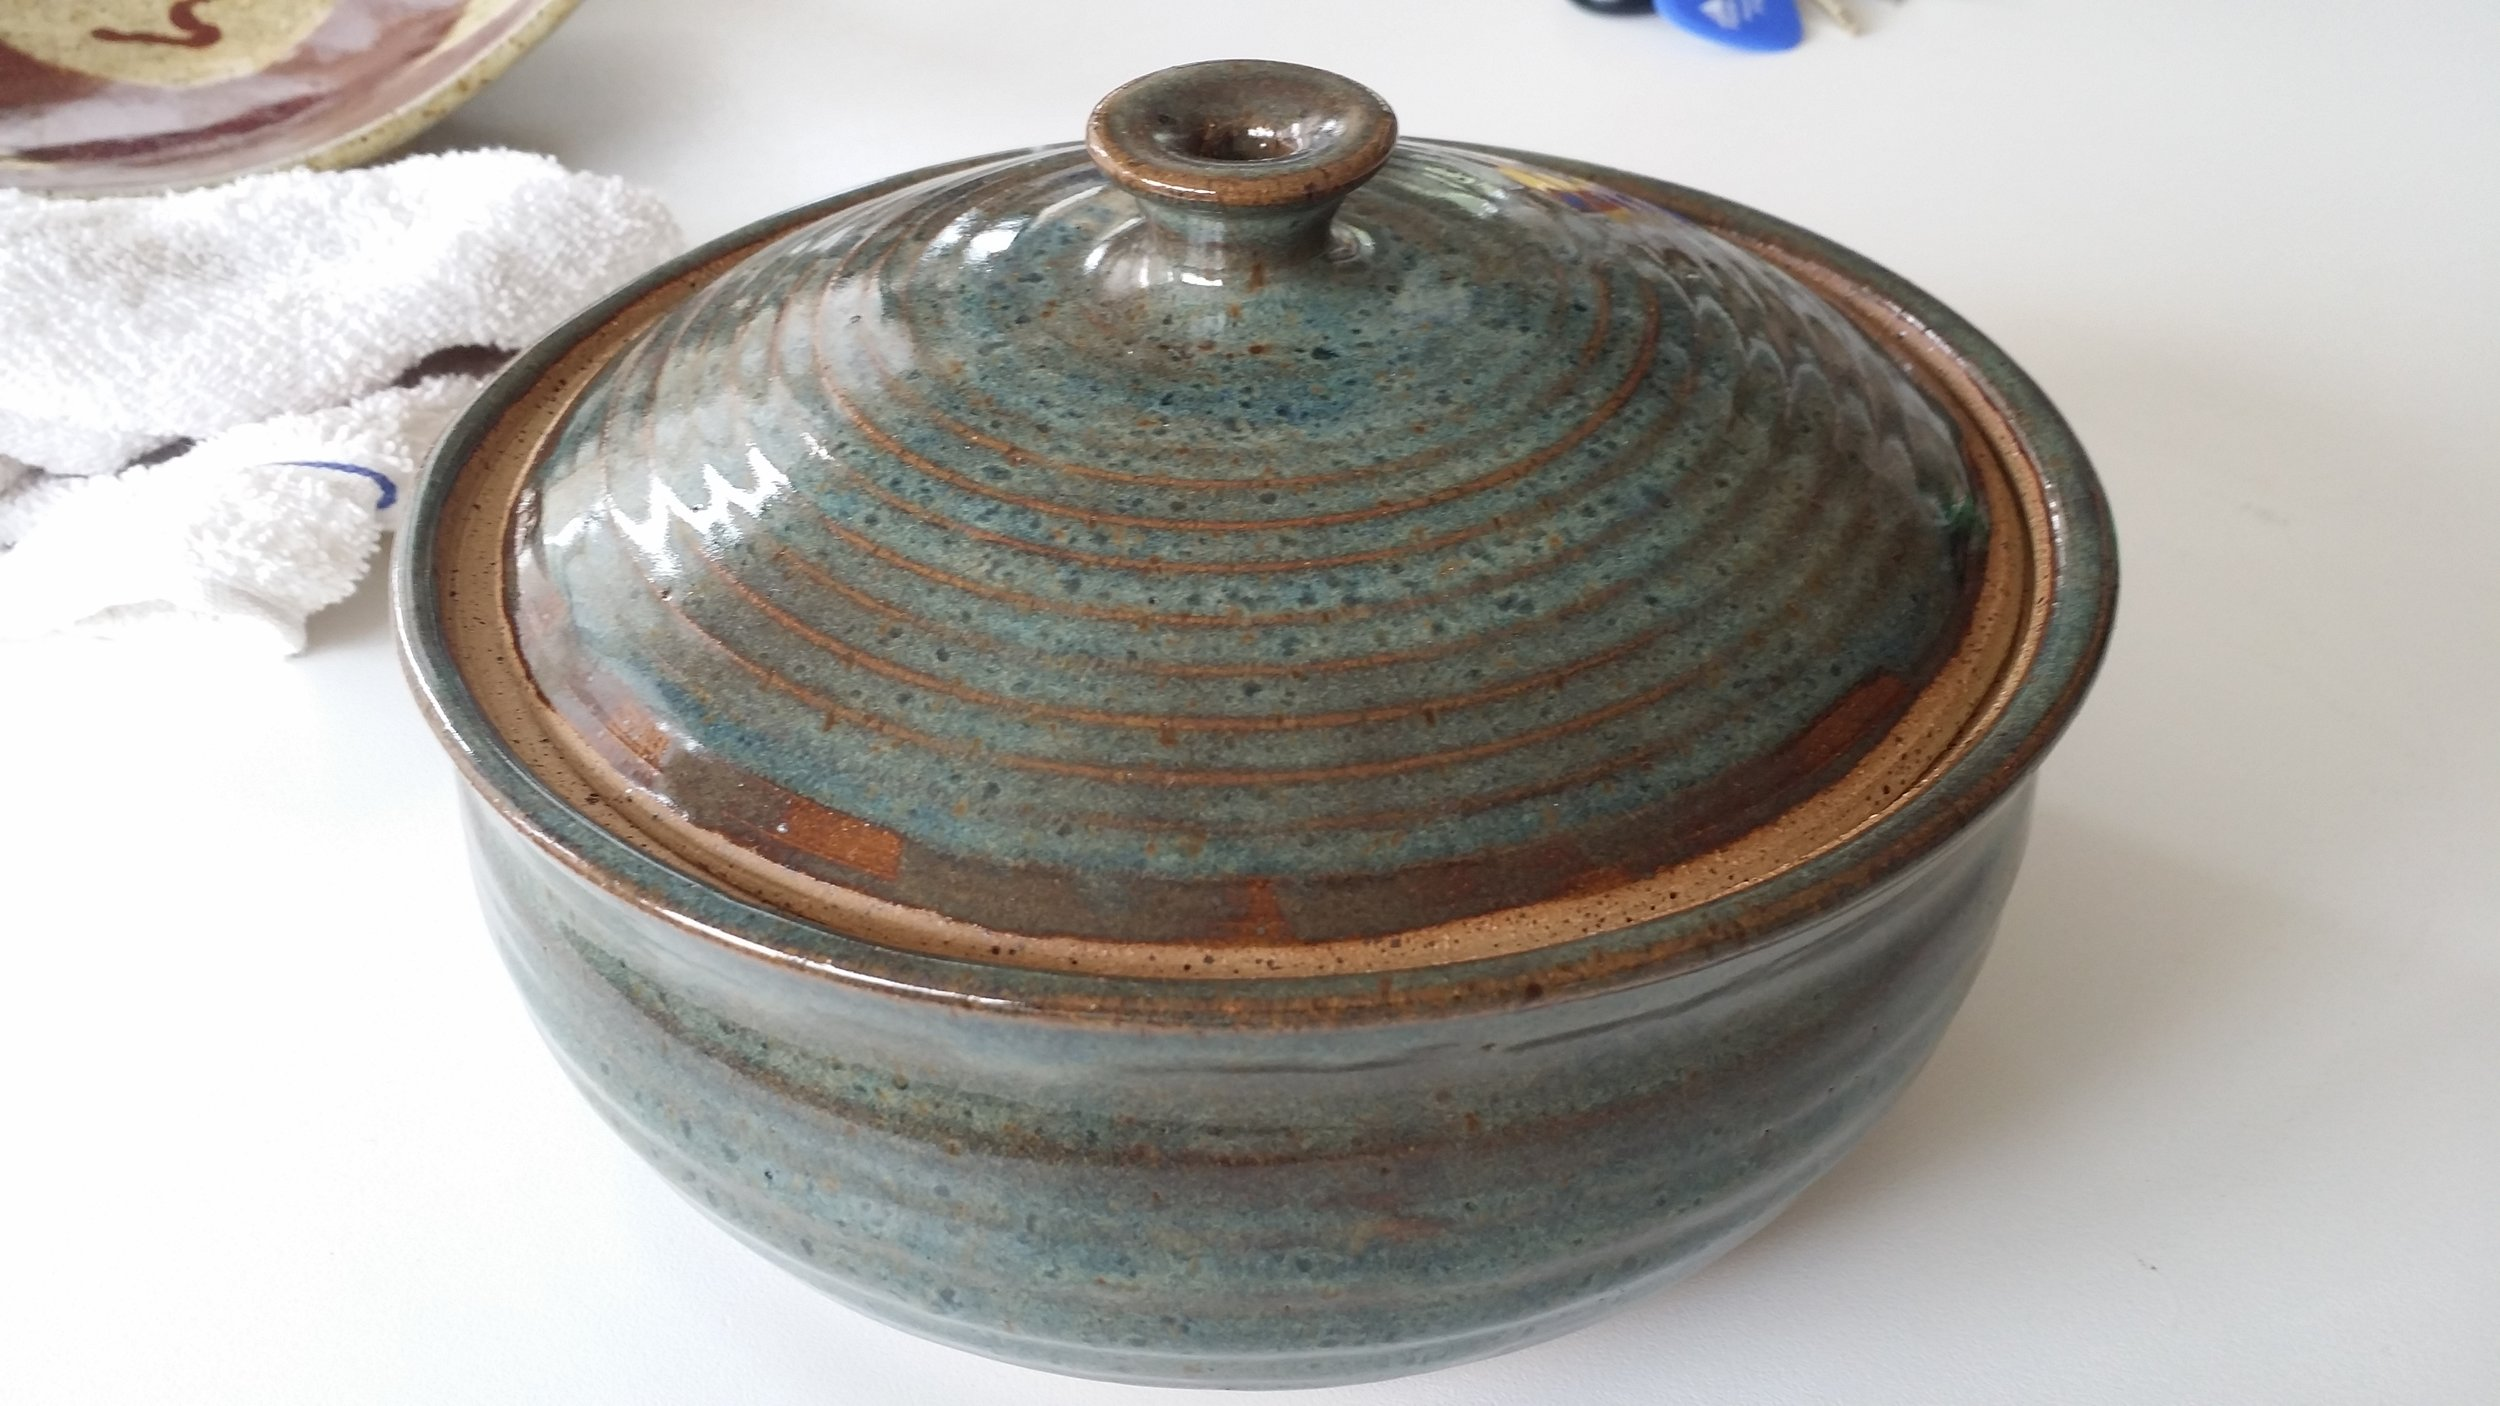 This is another multi-process piece. The casserole is thrown on the pottery wheel and the top is thrown on the wheel with a plaster bowl shape mold using calipers to ensure its the right size to fit the casserole base. You form a handle while making the top piece.